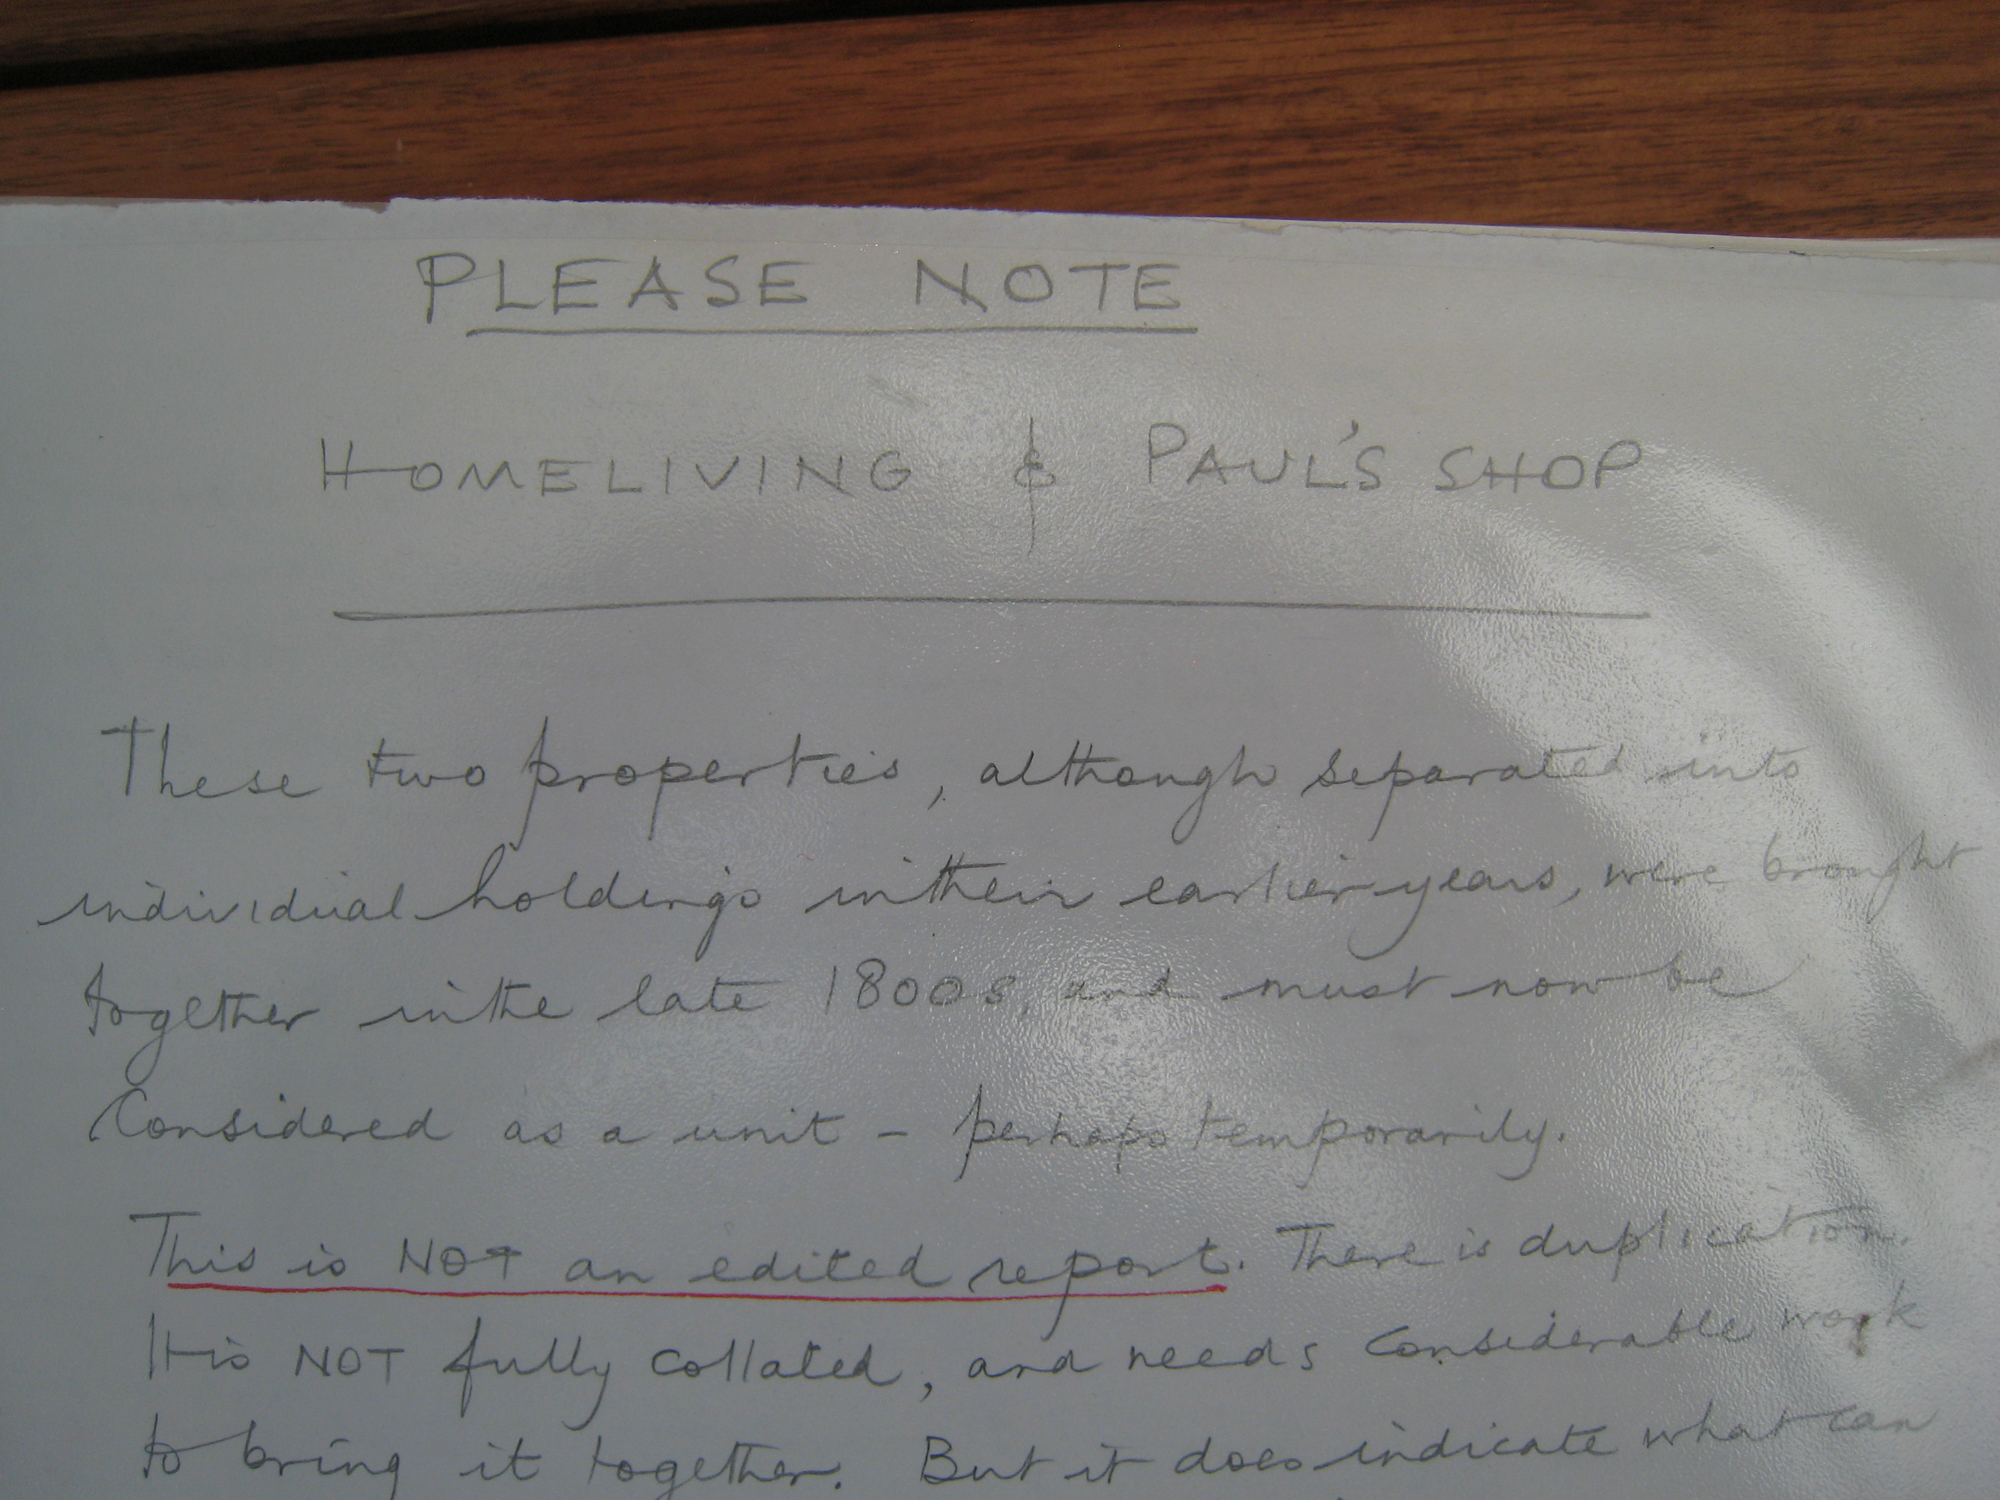 Homeliving and Paul's Shop, 'Please note ...'